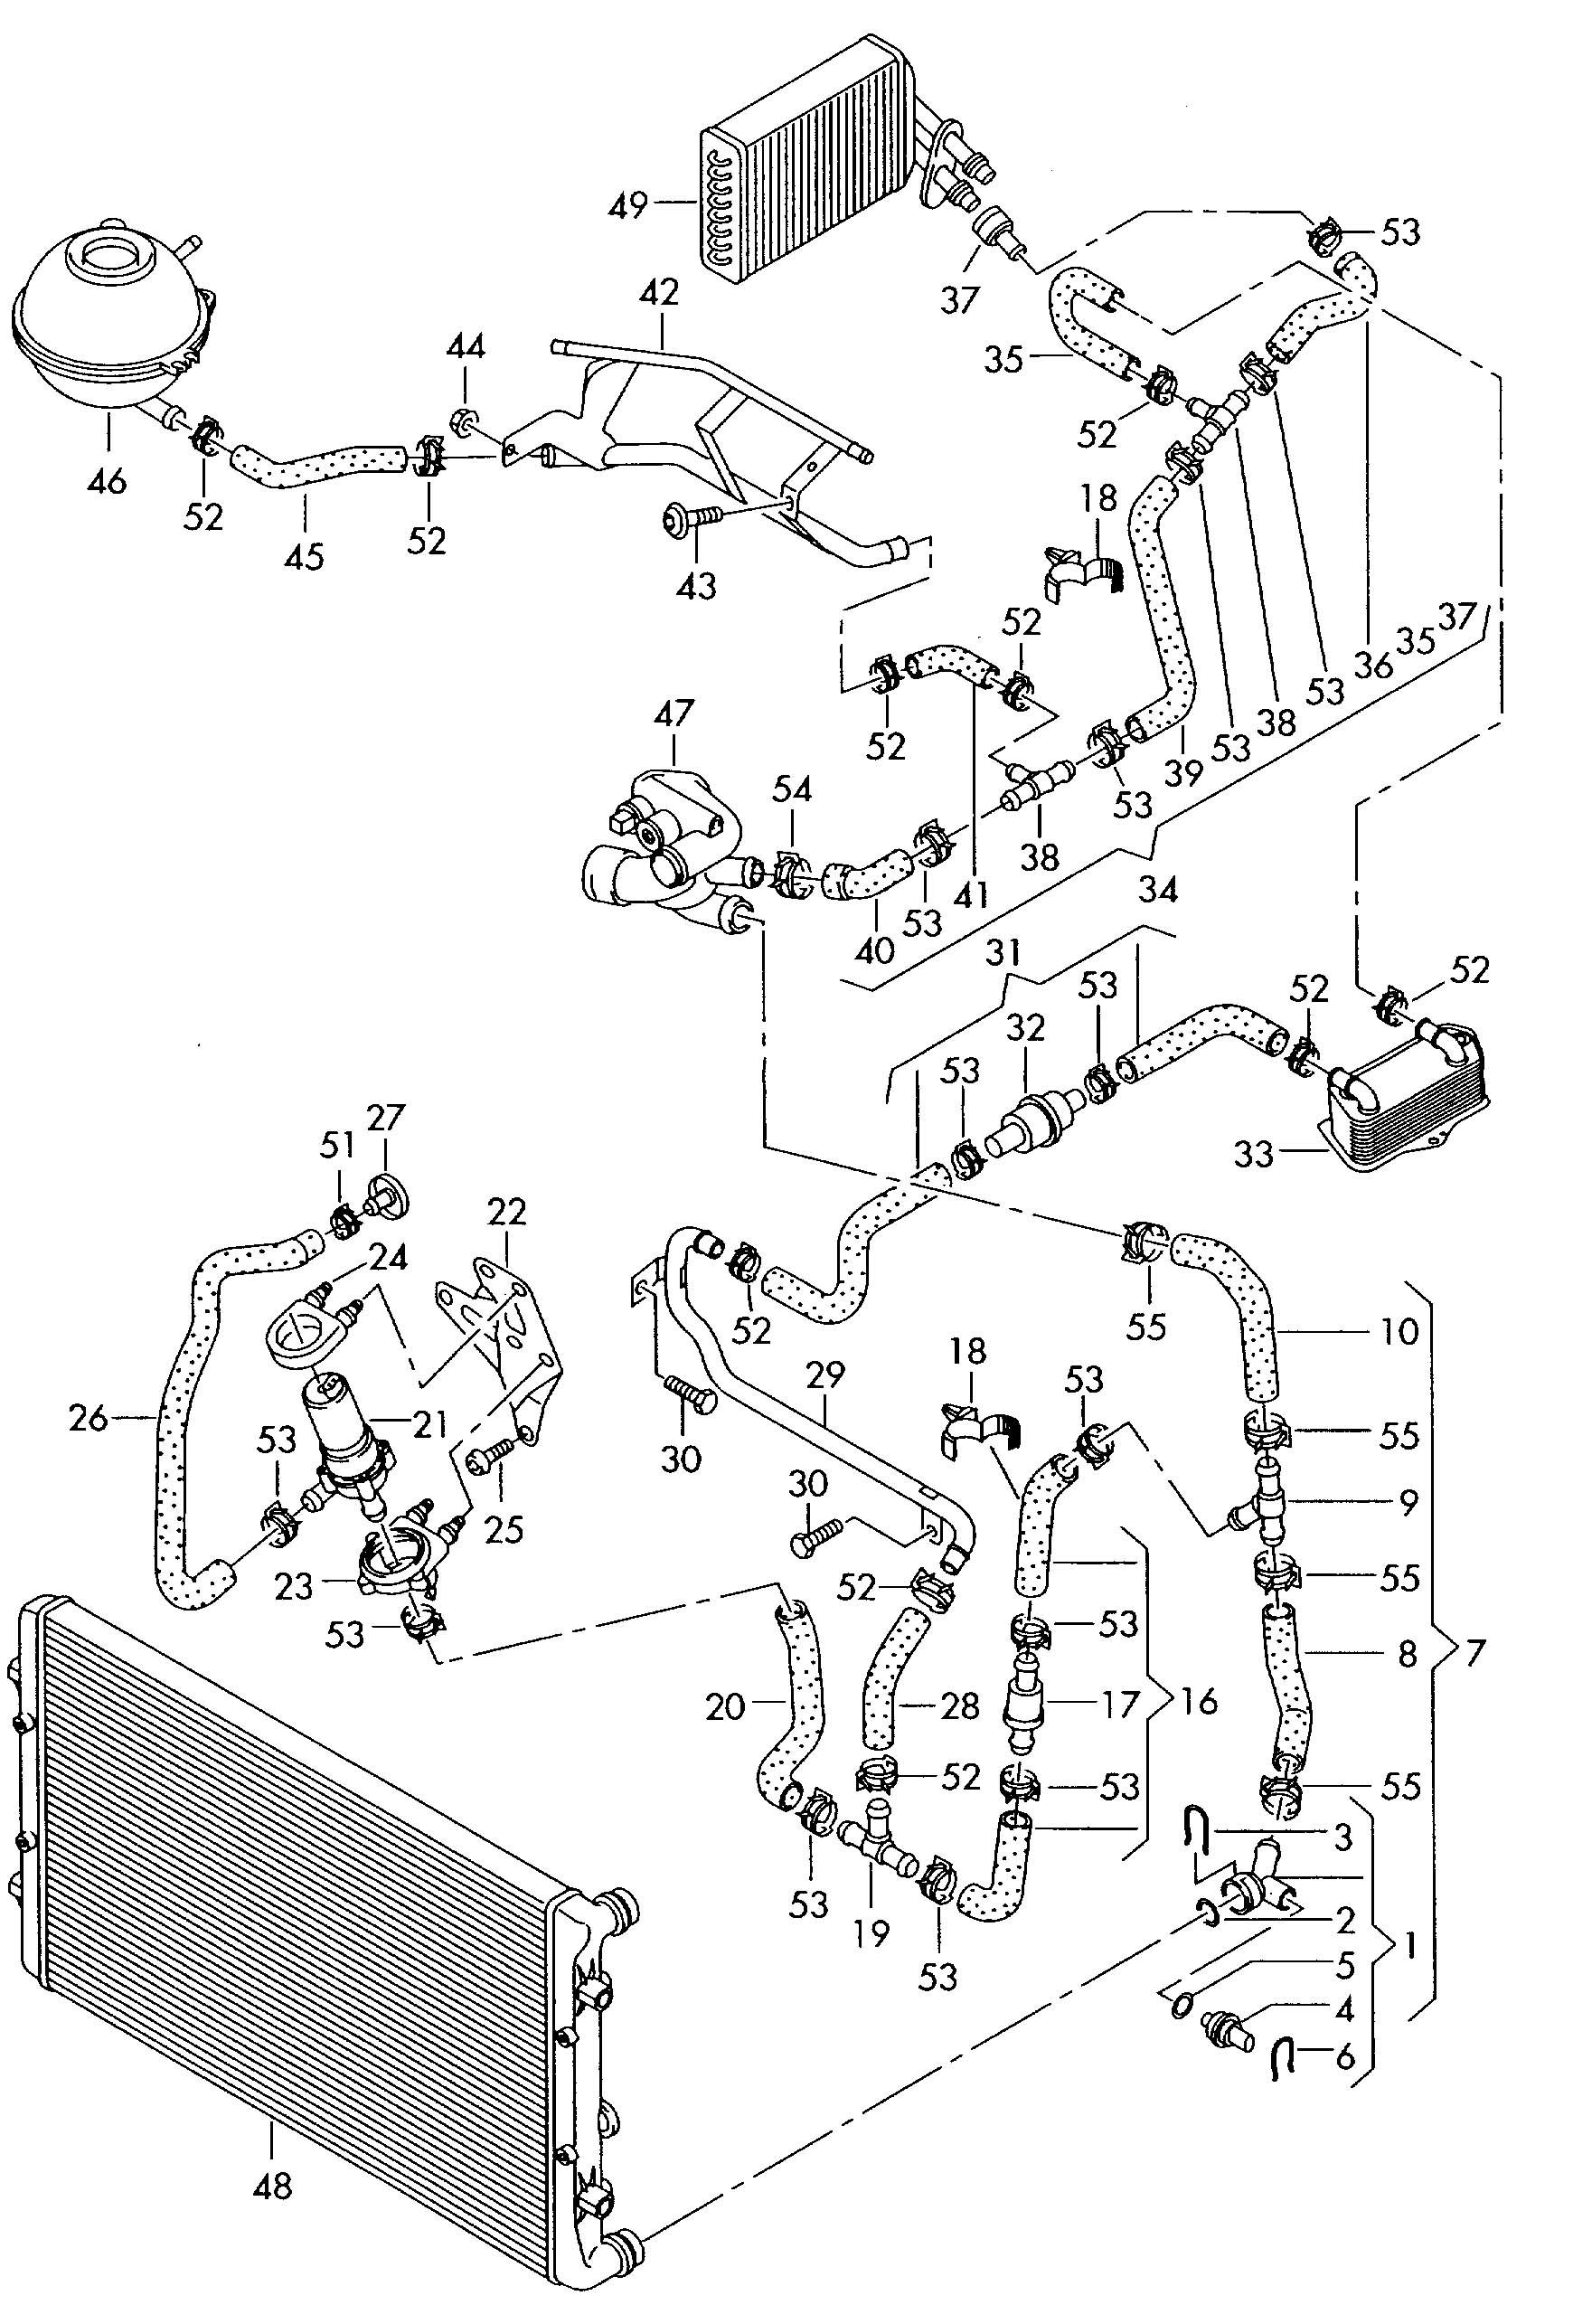 radiator line diagram for 2003 audi 1 8t quattro audi 1 8t wiring diagram audi a3 cooling system diagram | audi | audi a3, audi ...